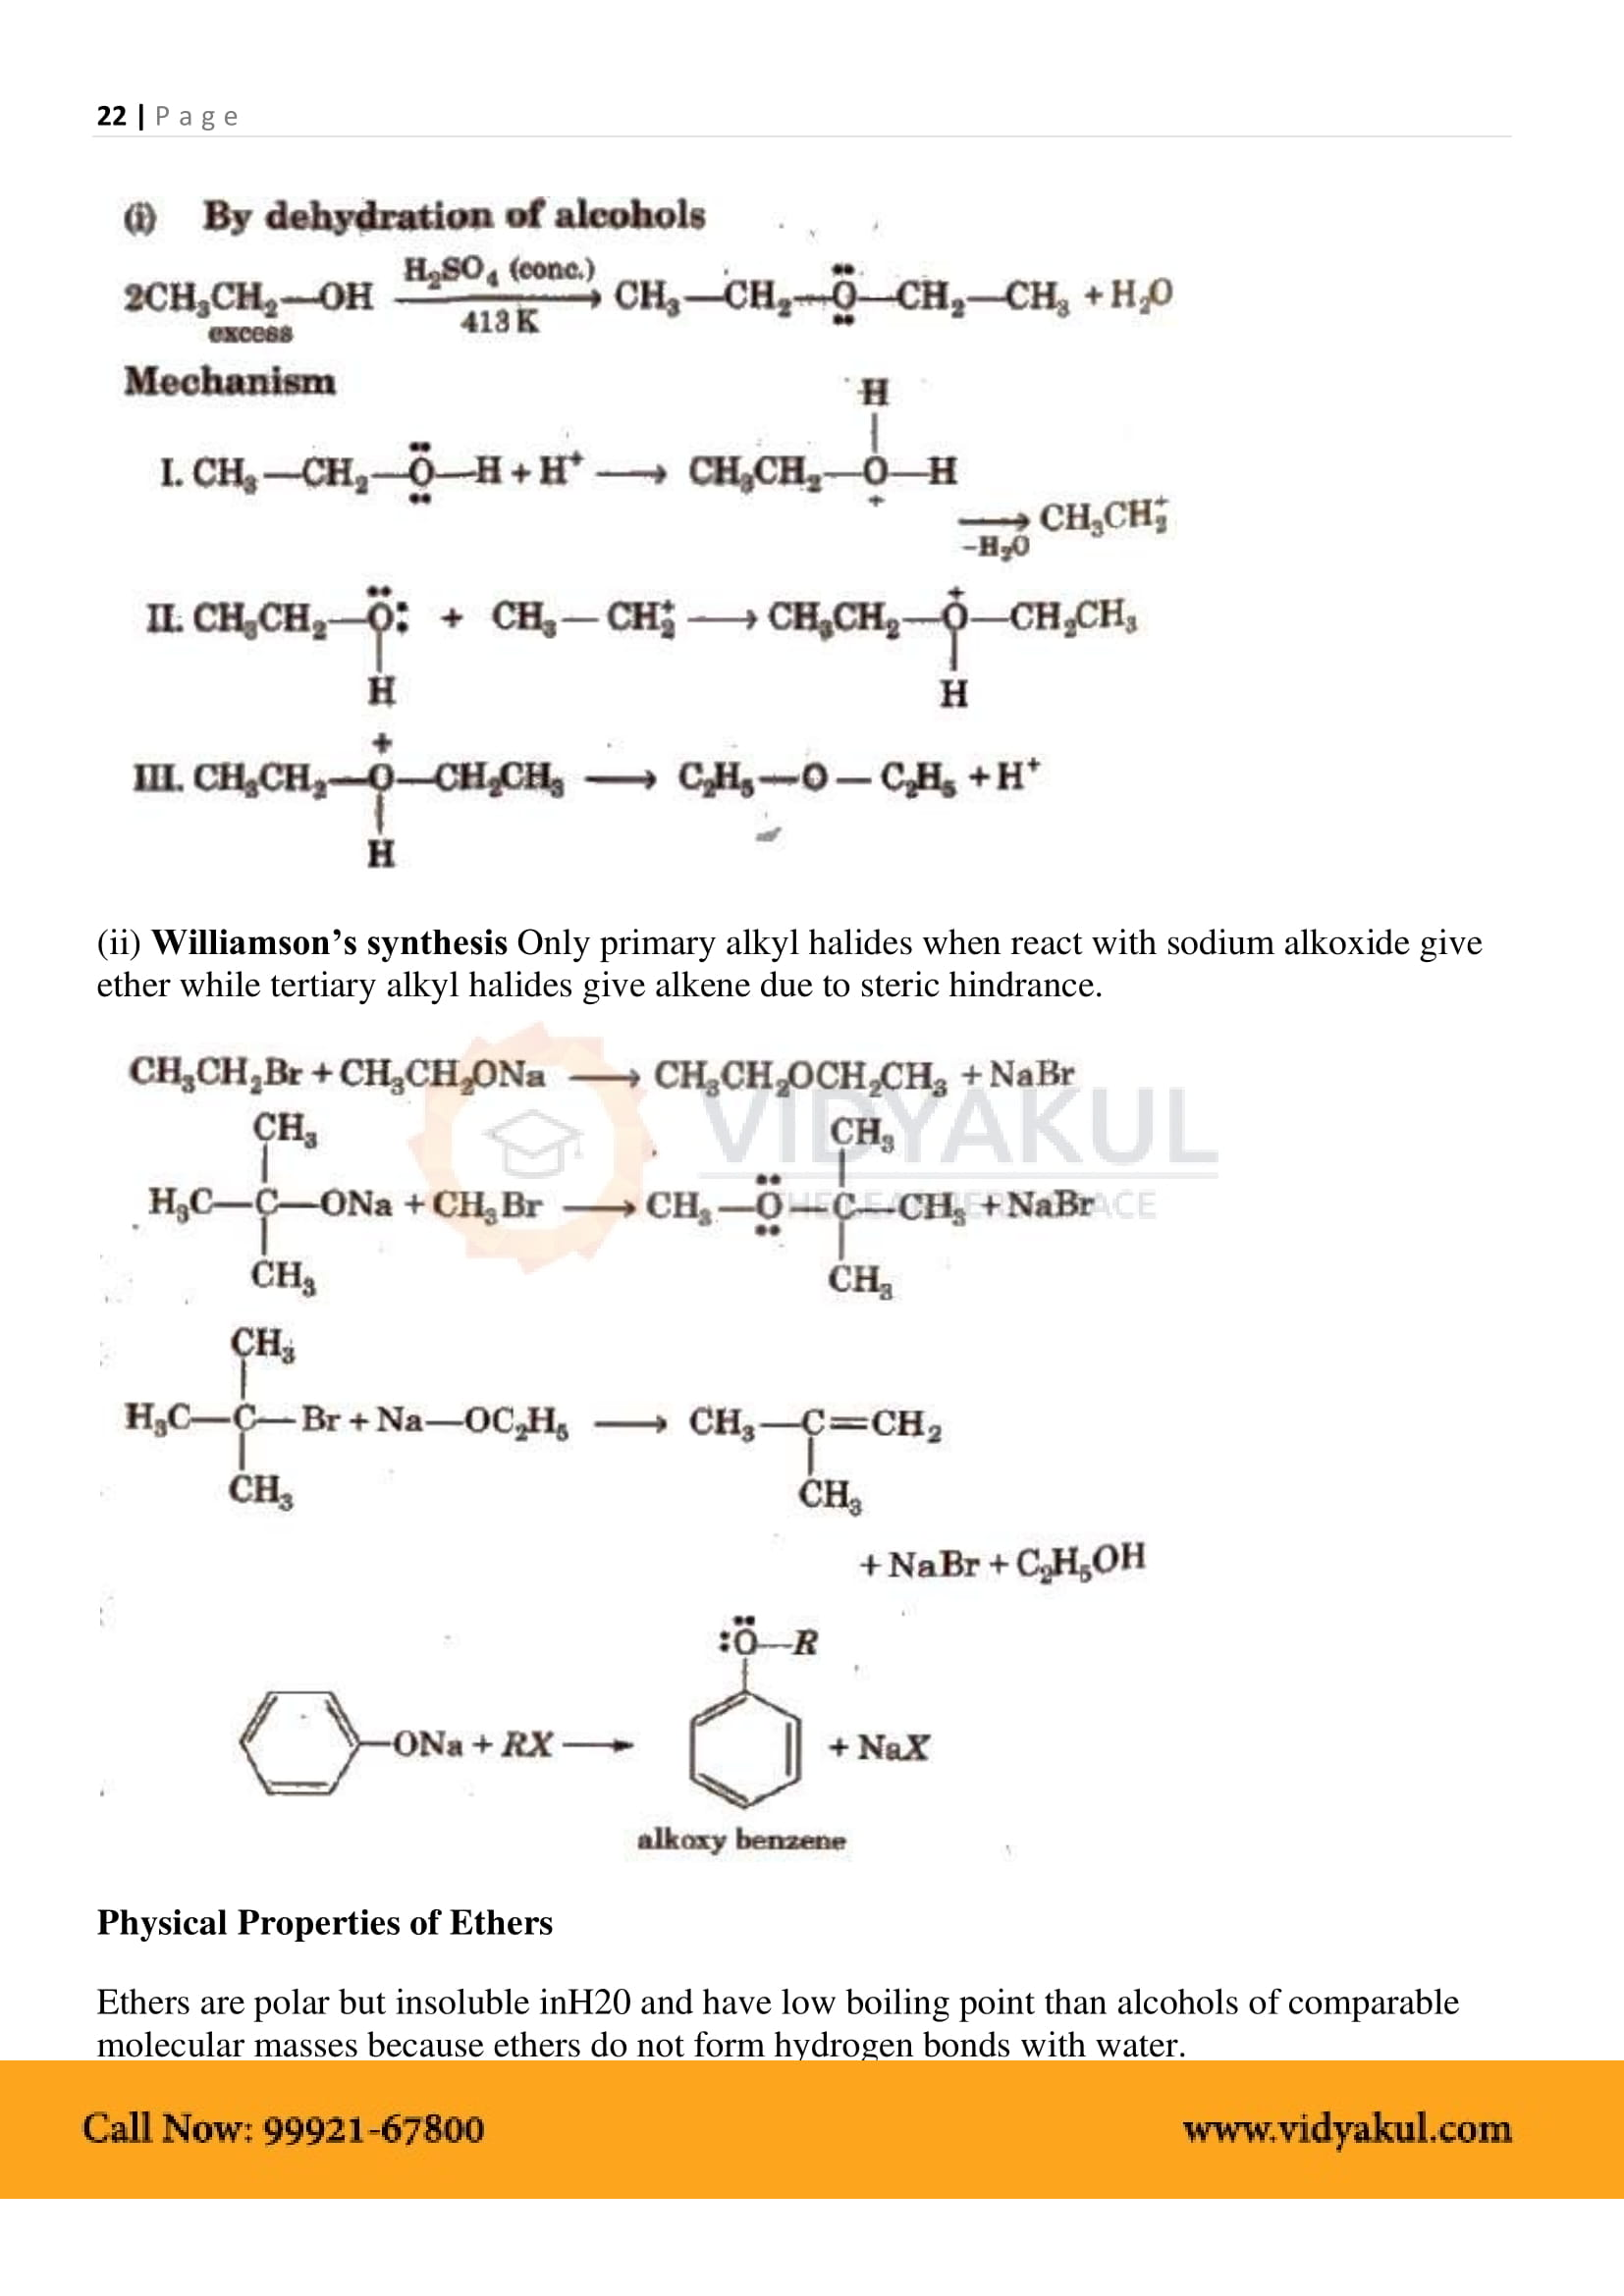 Alcohols, Phenols and Ethers Class 12 Notes | Vidyakul